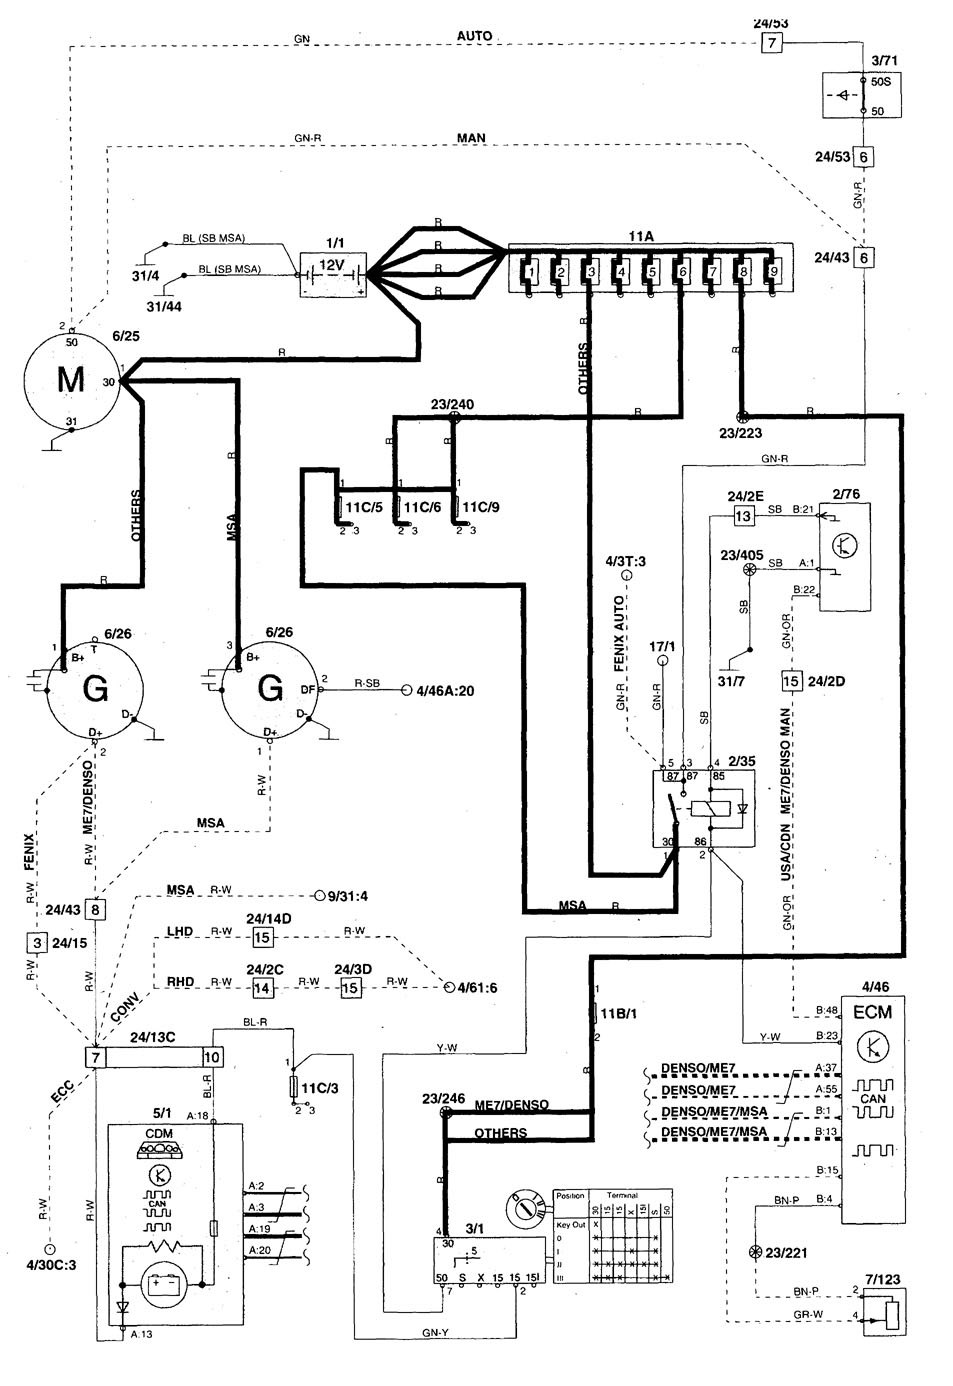 volvo c70 wiring diagram charging system 1 1999 volvo c70 (1999 2004) wiring diagrams charging system 1999 volvo c70 wiring diagram at bayanpartner.co